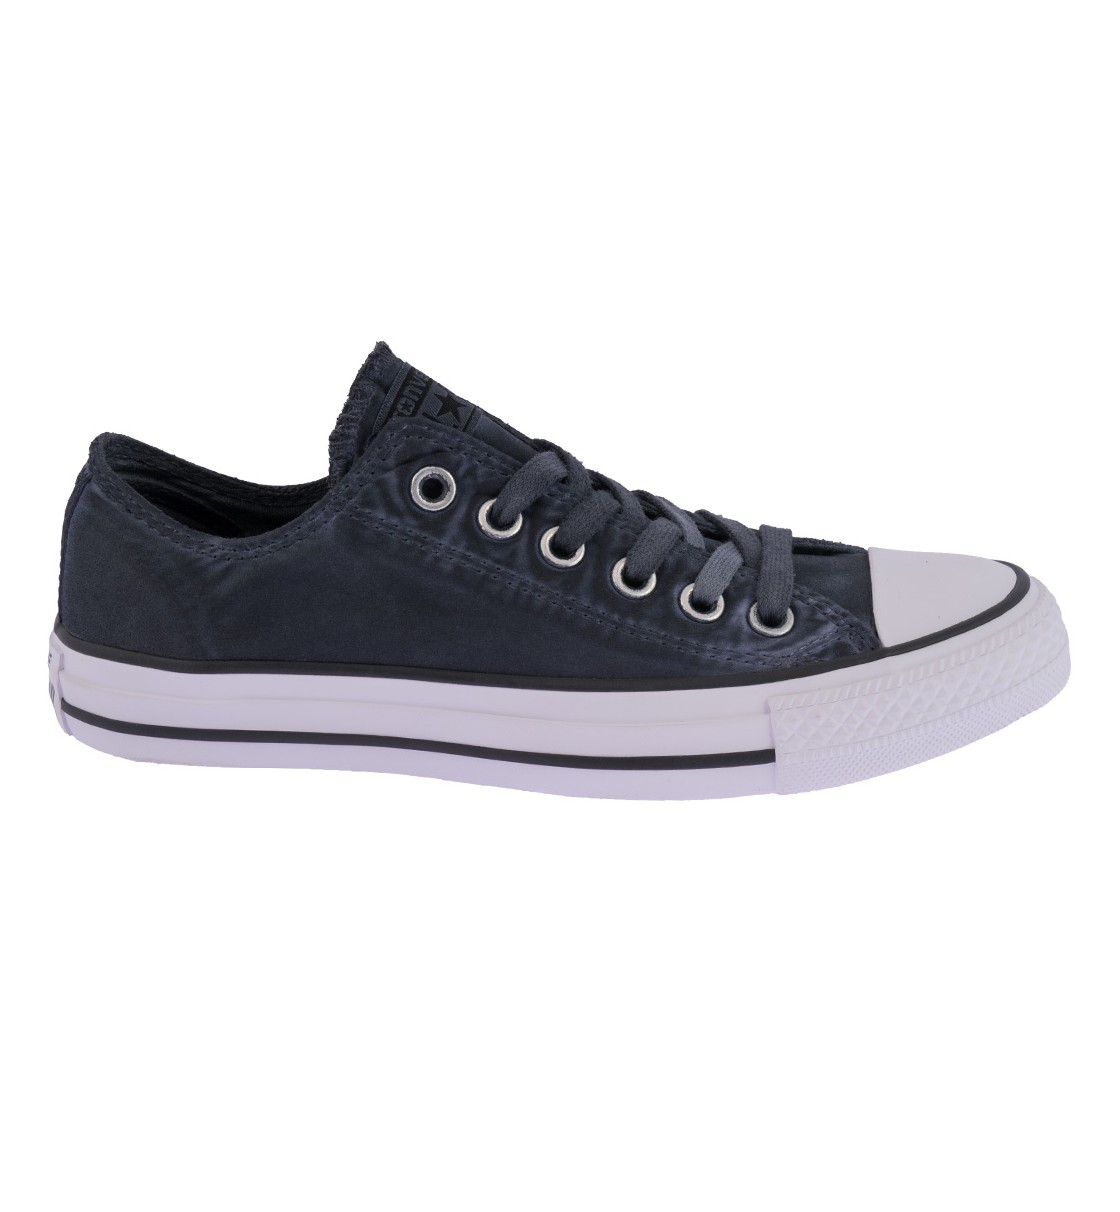 Converse Unisex Παπούτσι Μόδας Chuck Taylor All Star Ox 155390C